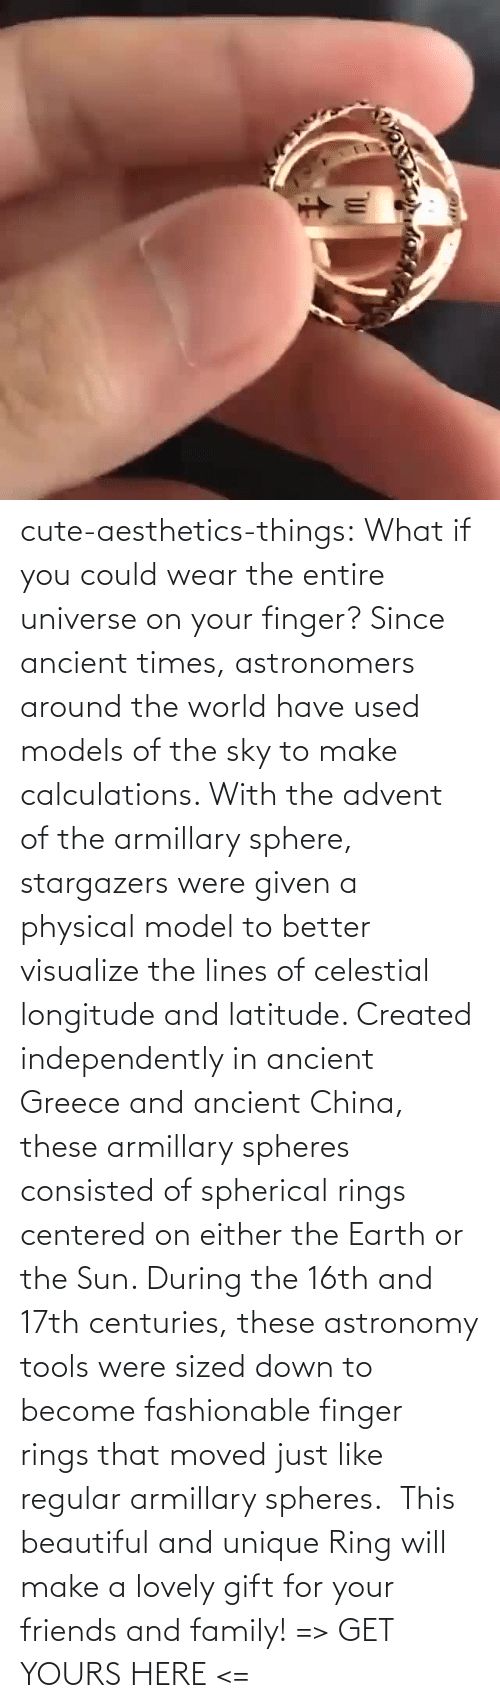 rings: cute-aesthetics-things: What if you could wear the entire universe on your finger? Since ancient times, astronomers around the world have used models of the sky to make calculations. With the advent of the armillary sphere, stargazers were given a physical model to better visualize the lines of celestial longitude and latitude. Created independently in ancient Greece and ancient China, these armillary spheres consisted of spherical rings centered on either the Earth or the Sun. During the 16th and 17th centuries, these astronomy tools were sized down to become fashionable finger rings that moved just like regular armillary spheres.  This beautiful and unique Ring will make a lovely gift for your friends and family! => GET YOURS HERE <=